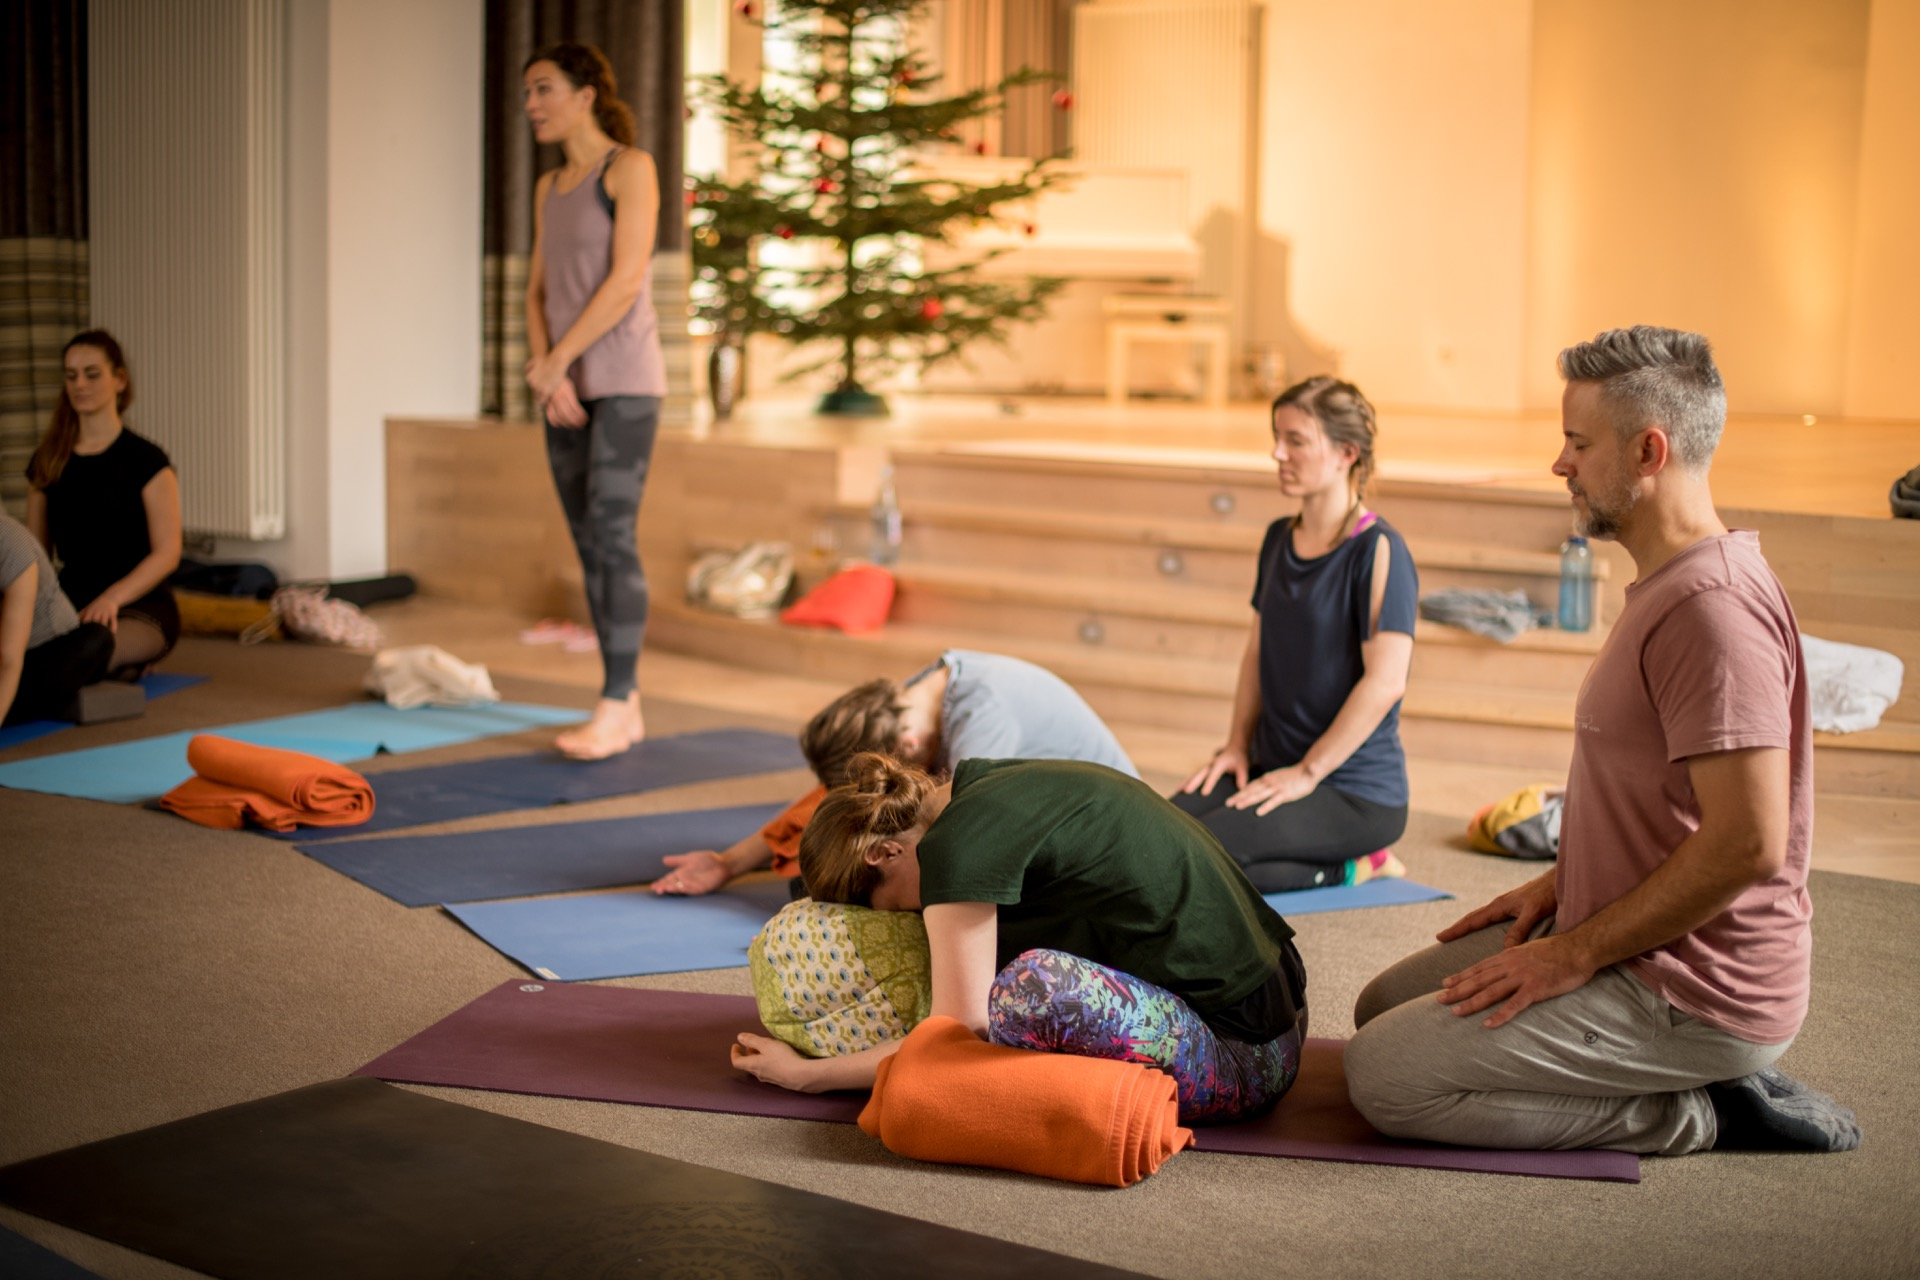 A-New-Beginning-Hie-Kim-Yoga-Retreat-Alina-Matis-Photography-013 - Hie Kim Yoga - Yoga Retreat - Yoga Workshops und Reisen